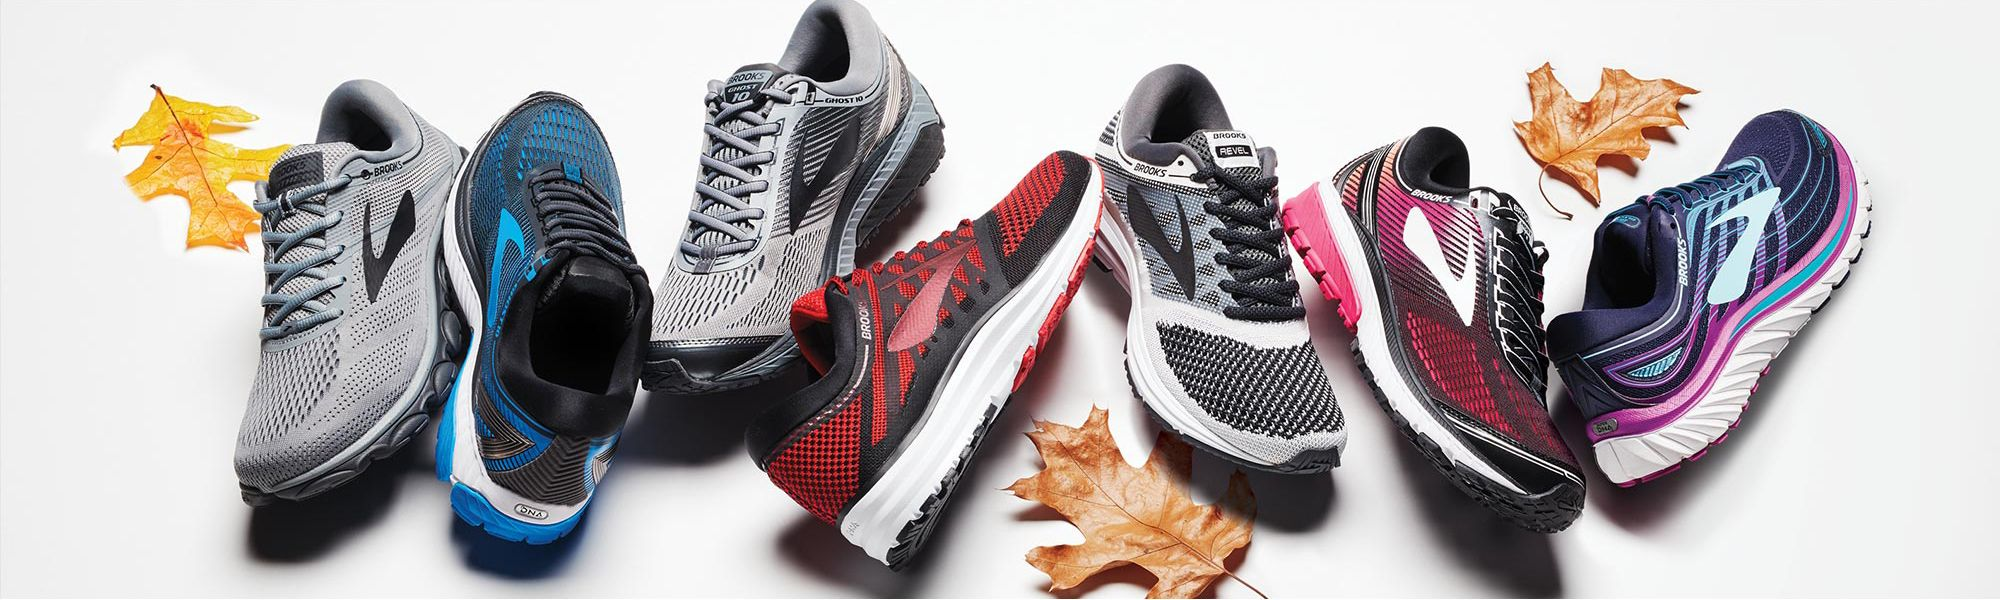 Shop Technology Running Shoes